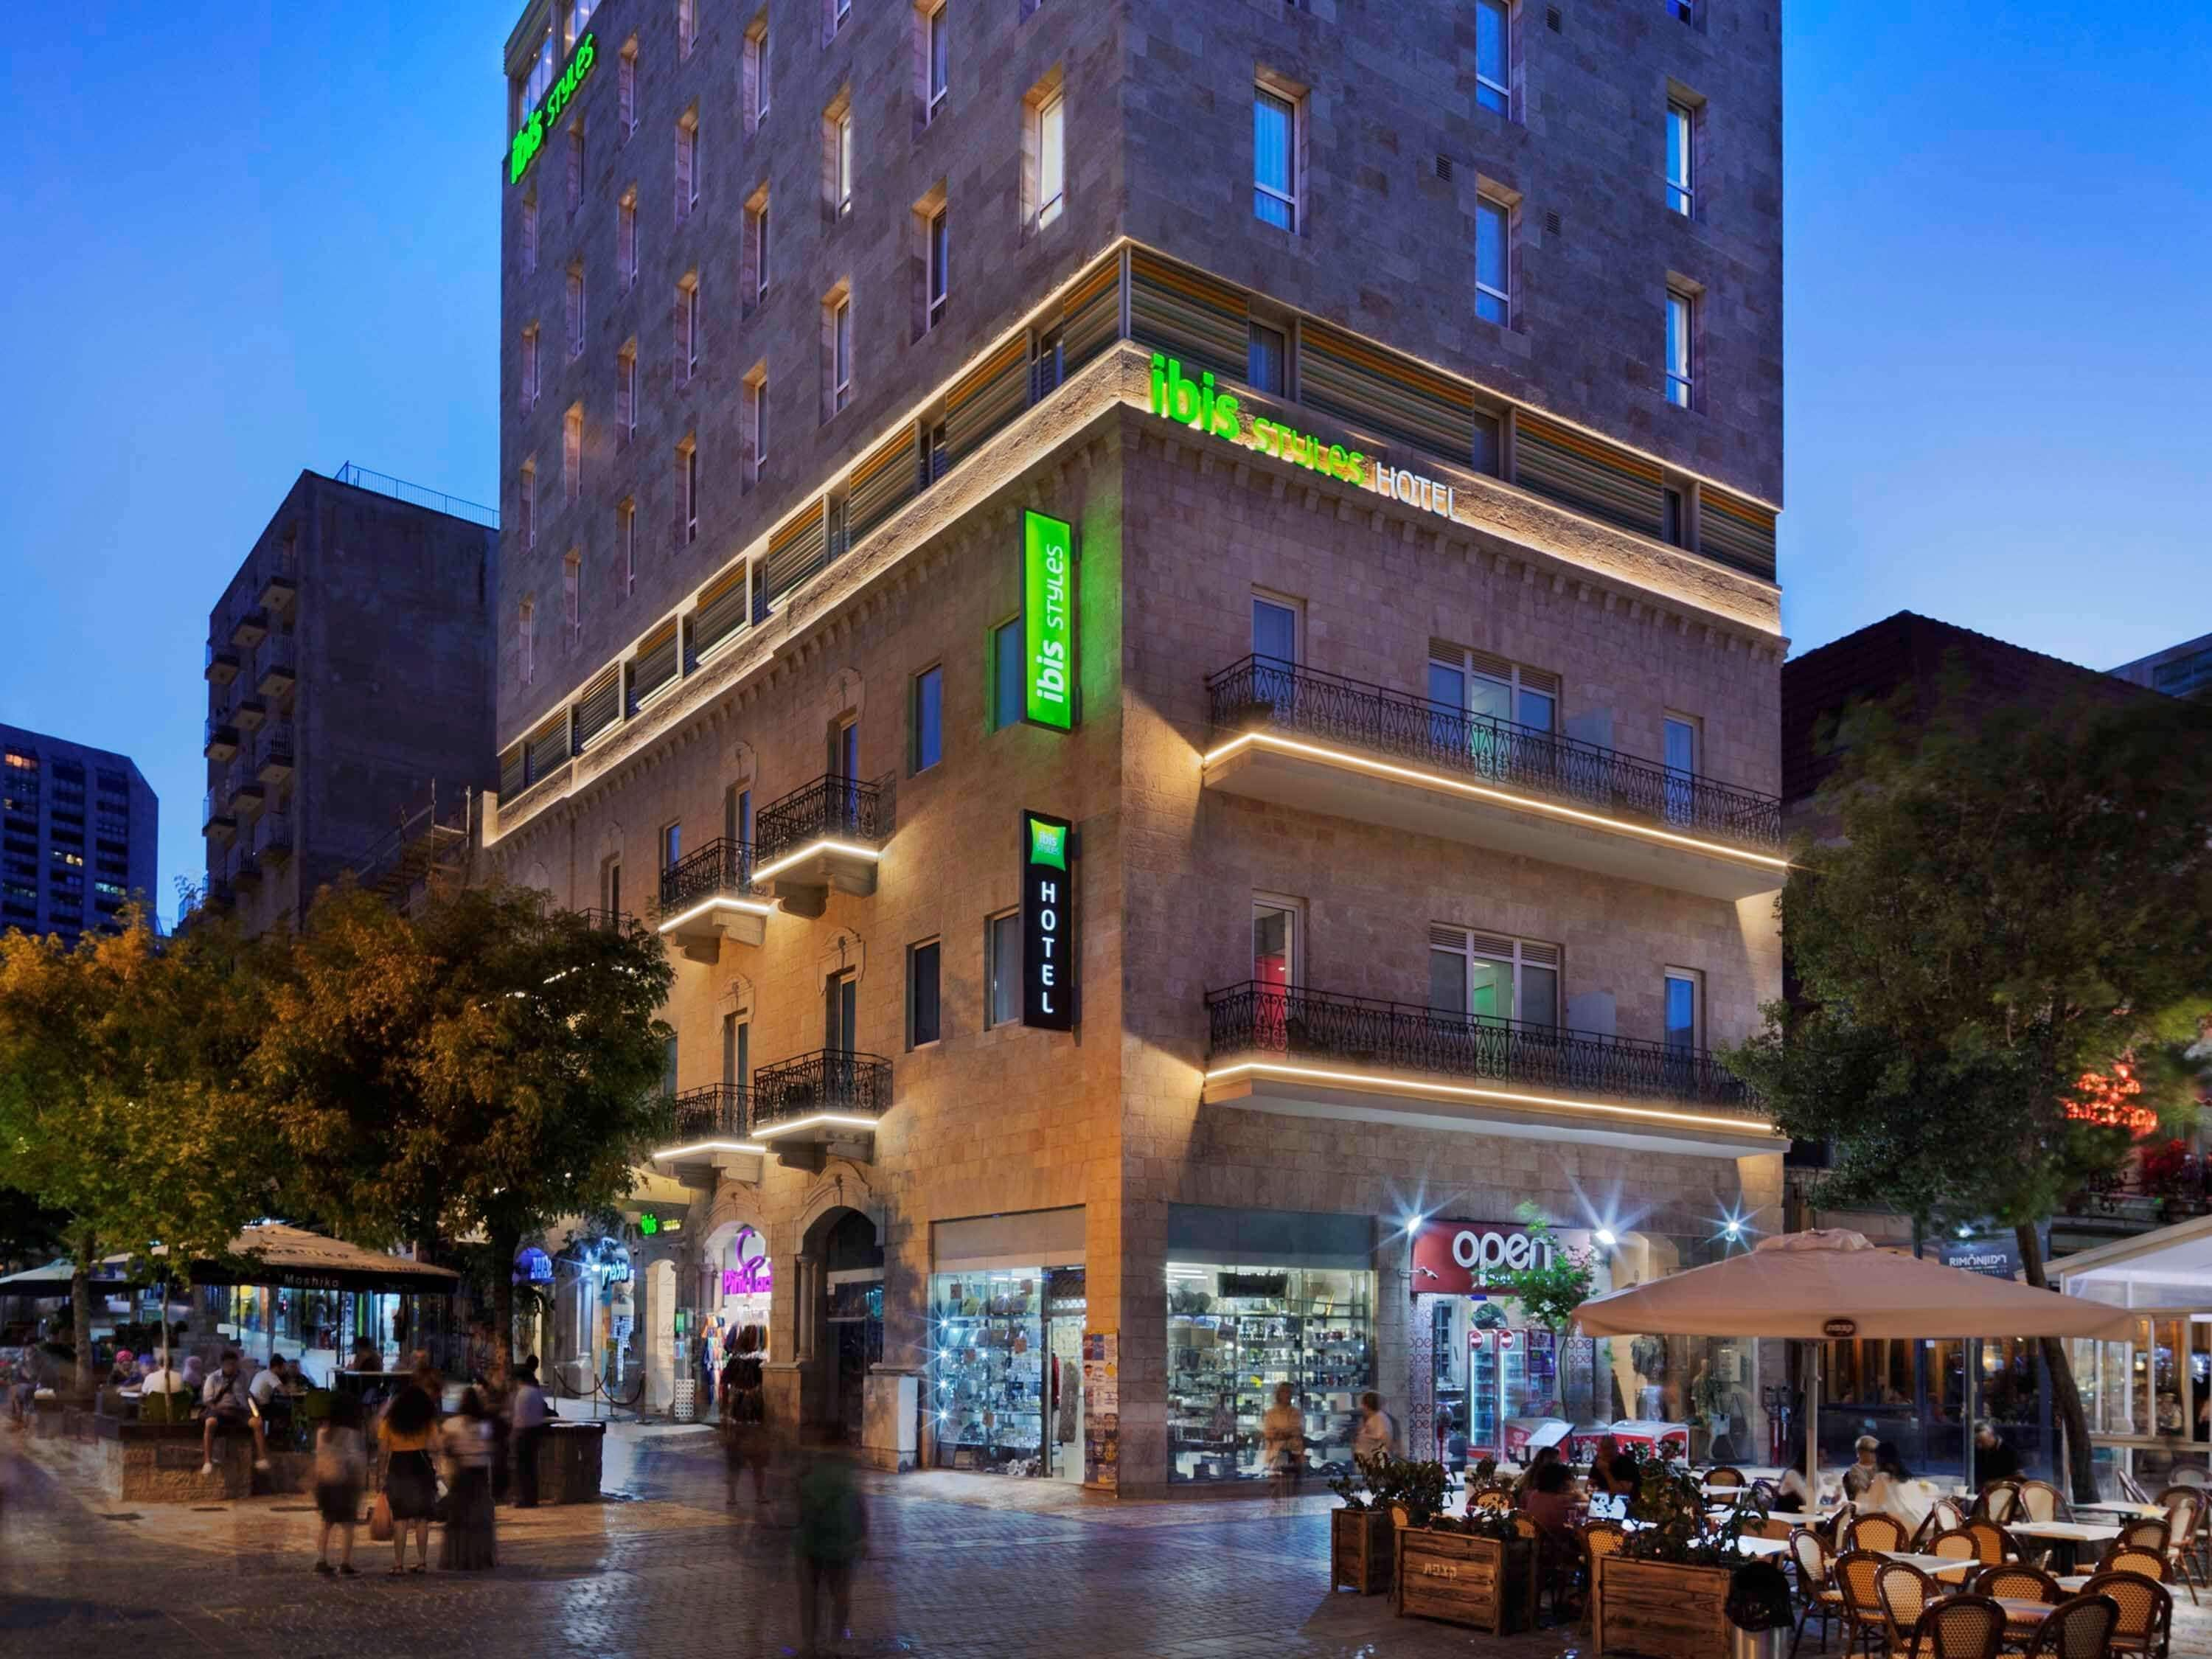 Ibis Styles Jerusalem City Center (opening November 2018)